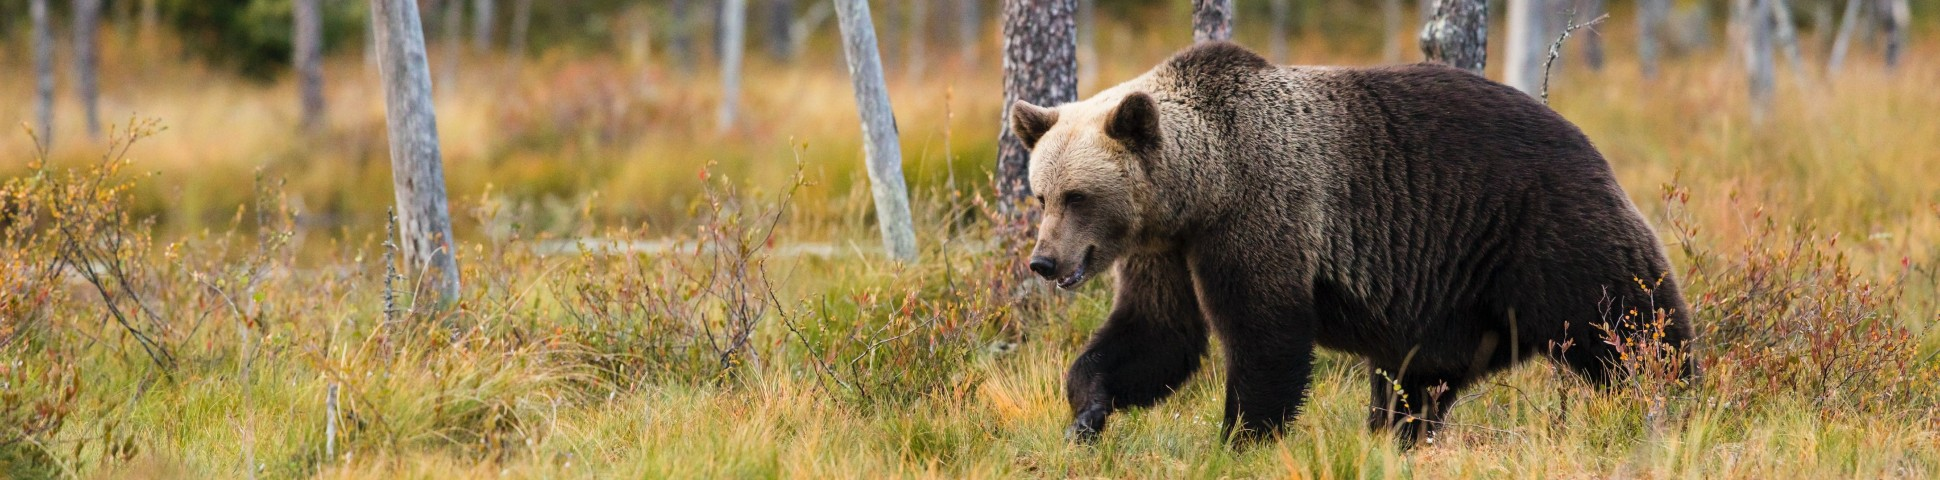 Bear spotted on wildlife watching tour